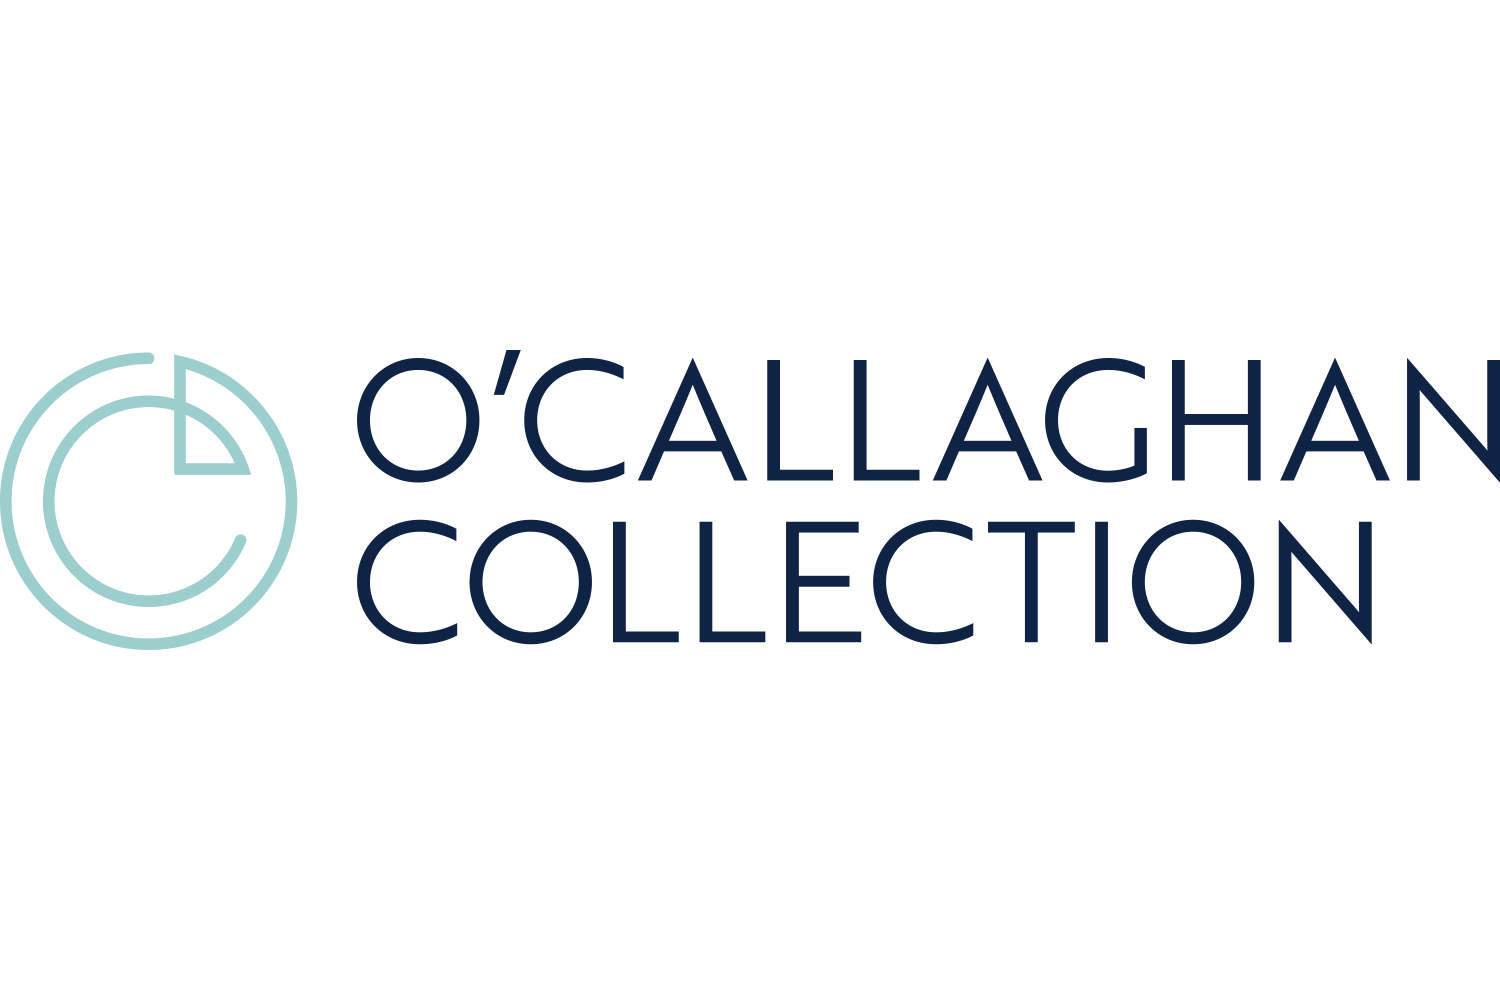 O'Callaghan Collection High Res Logo